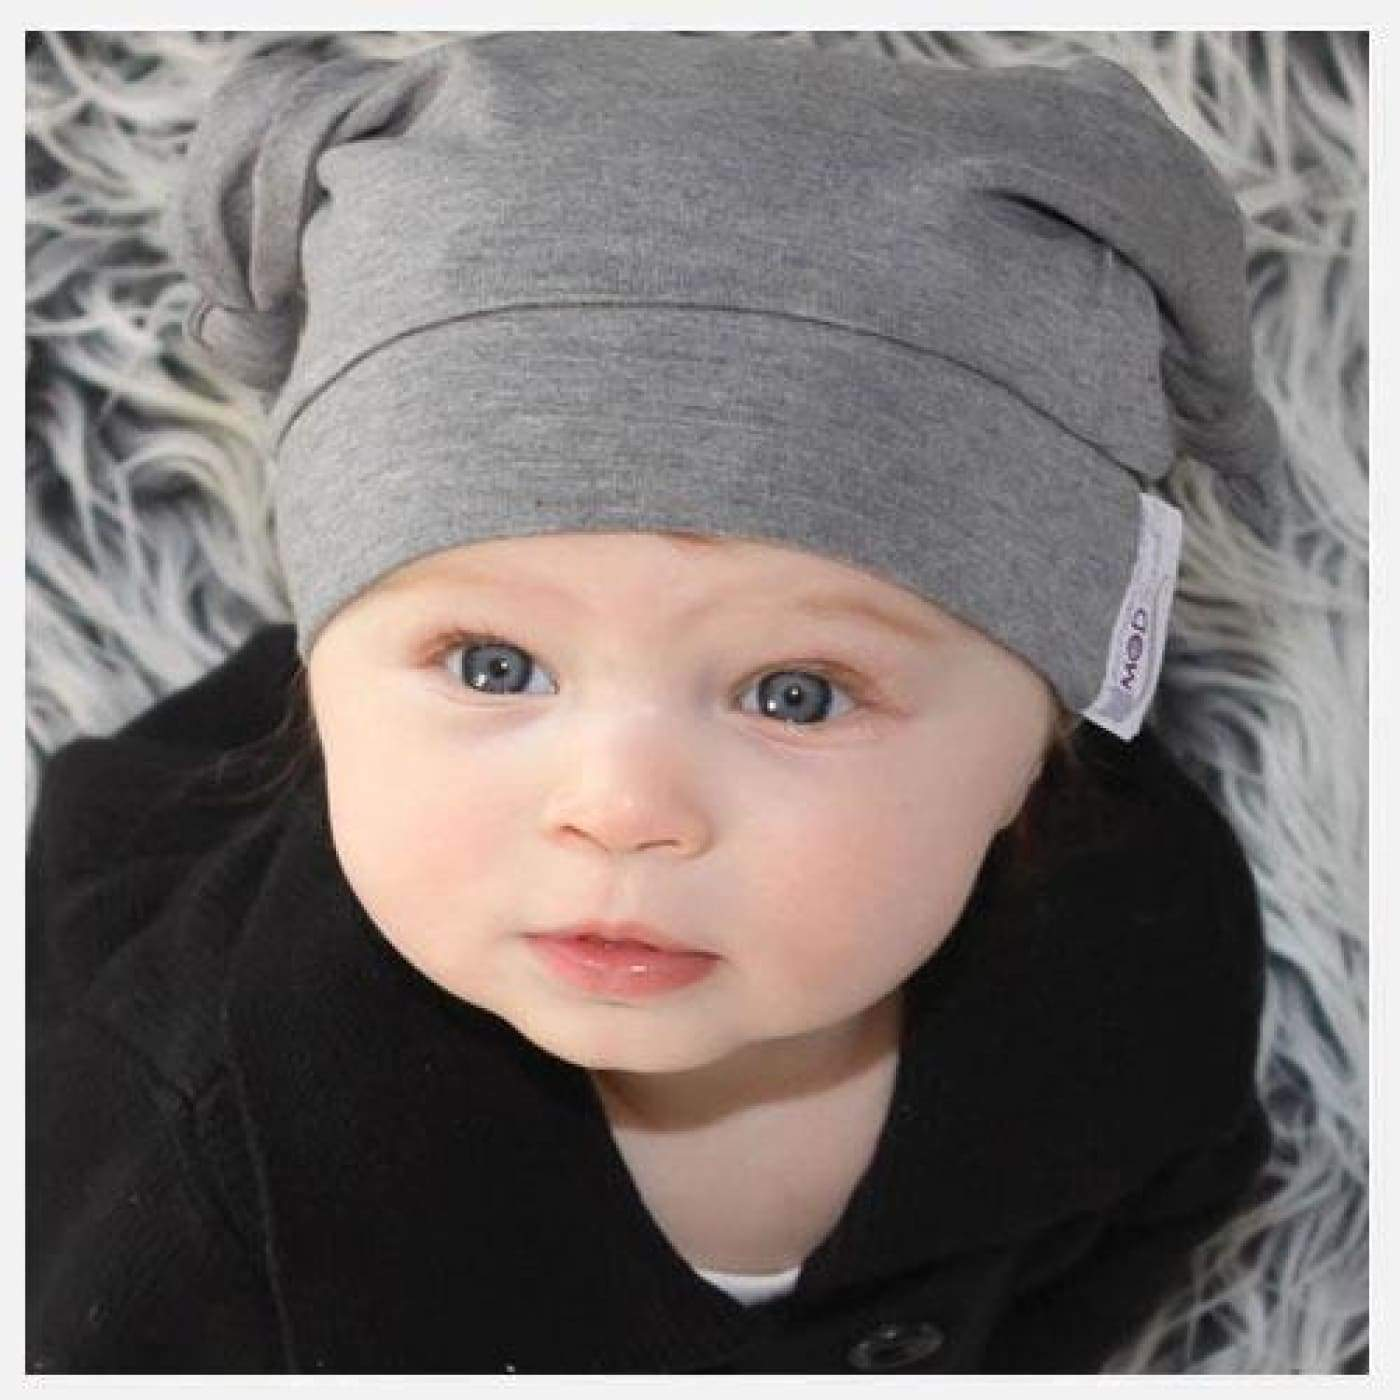 Mod Swad Bamboo Knot Beanie - Metro - Large - Large / Metro - BABY & TODDLER CLOTHING - BEANIES/HATS